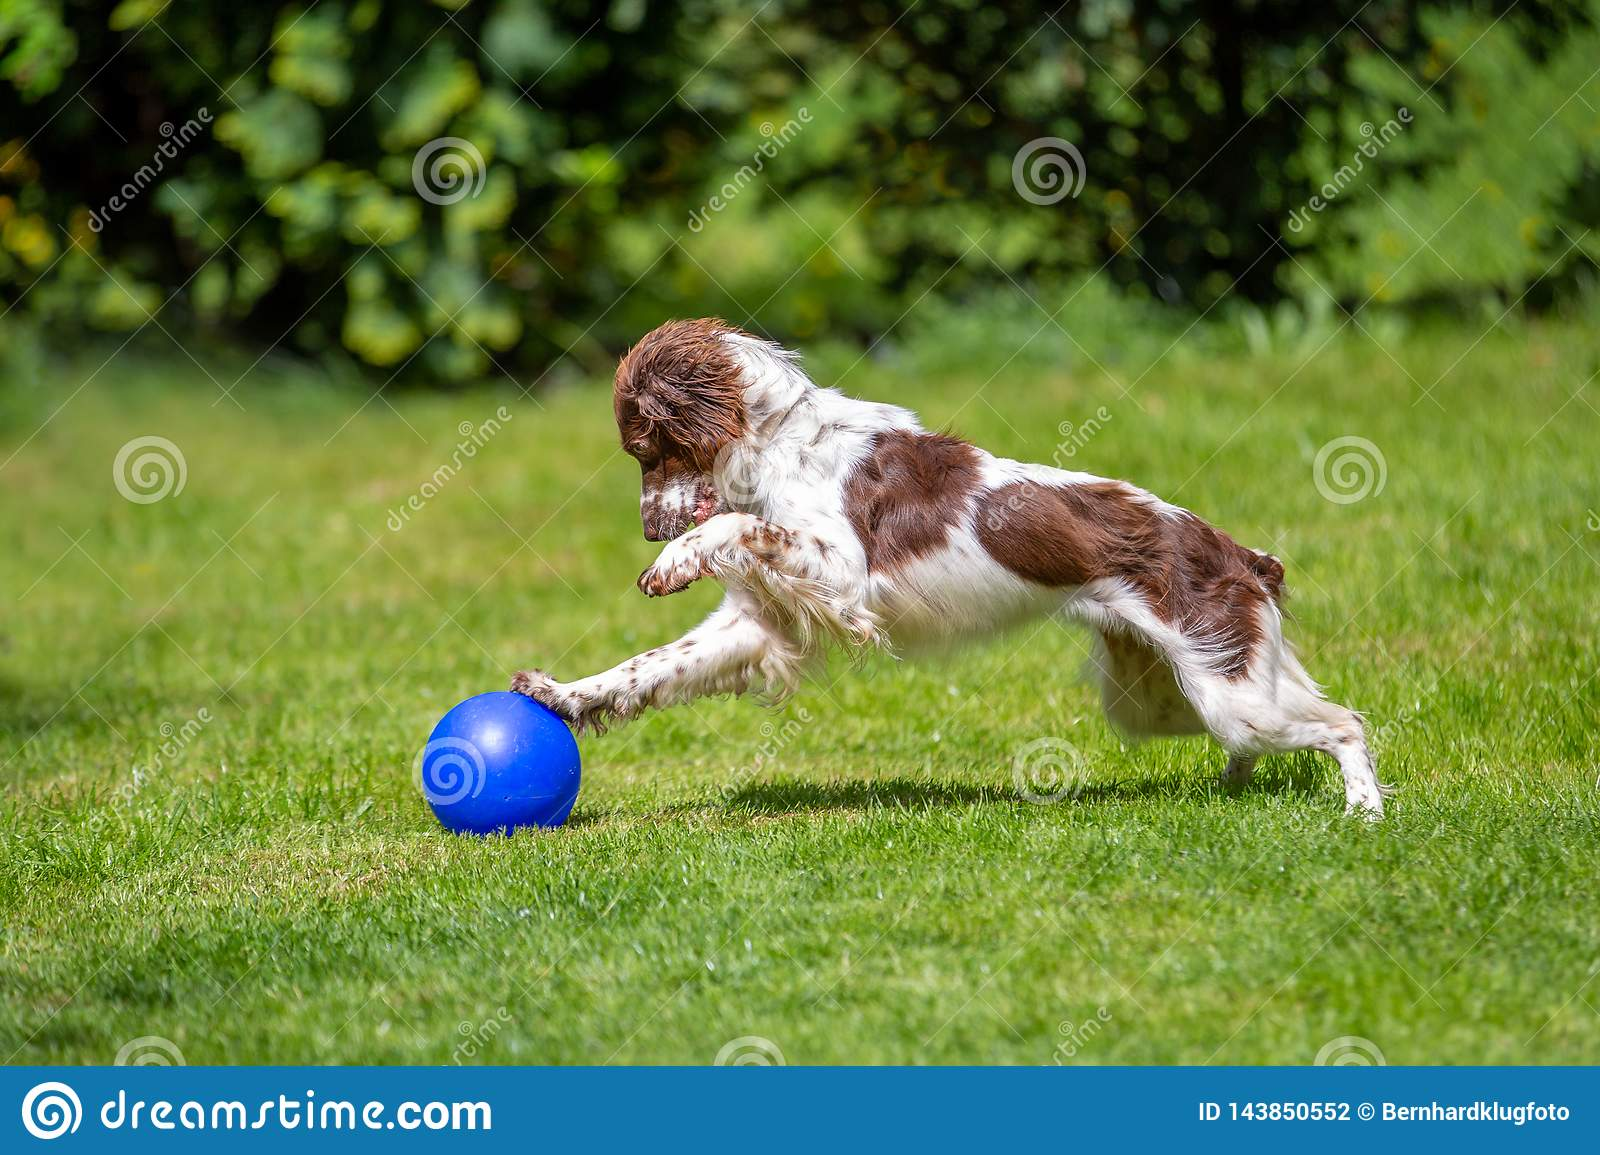 Cute young Springer Spaniel having fun playing with a blue ball on the lawn